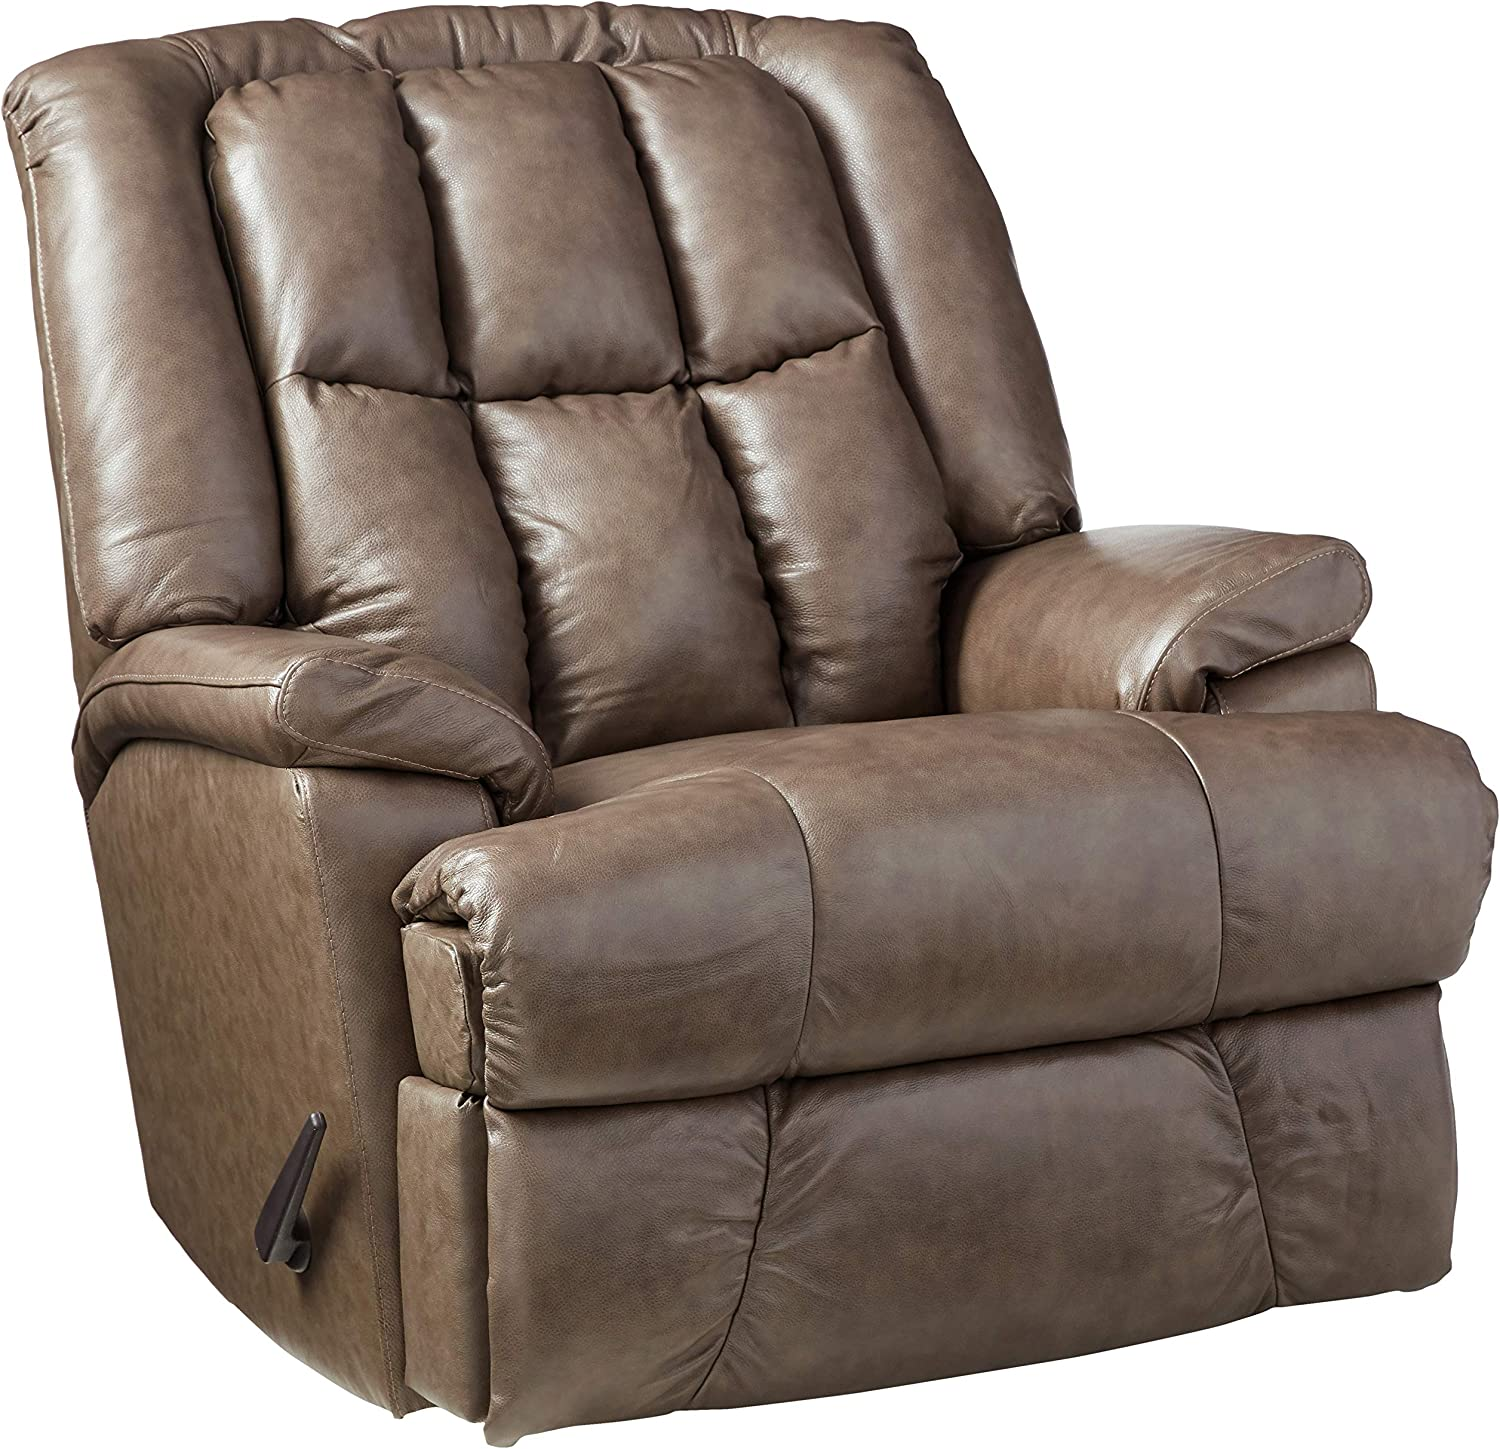 Lane Home Furnishings Rocker Recliner Leather